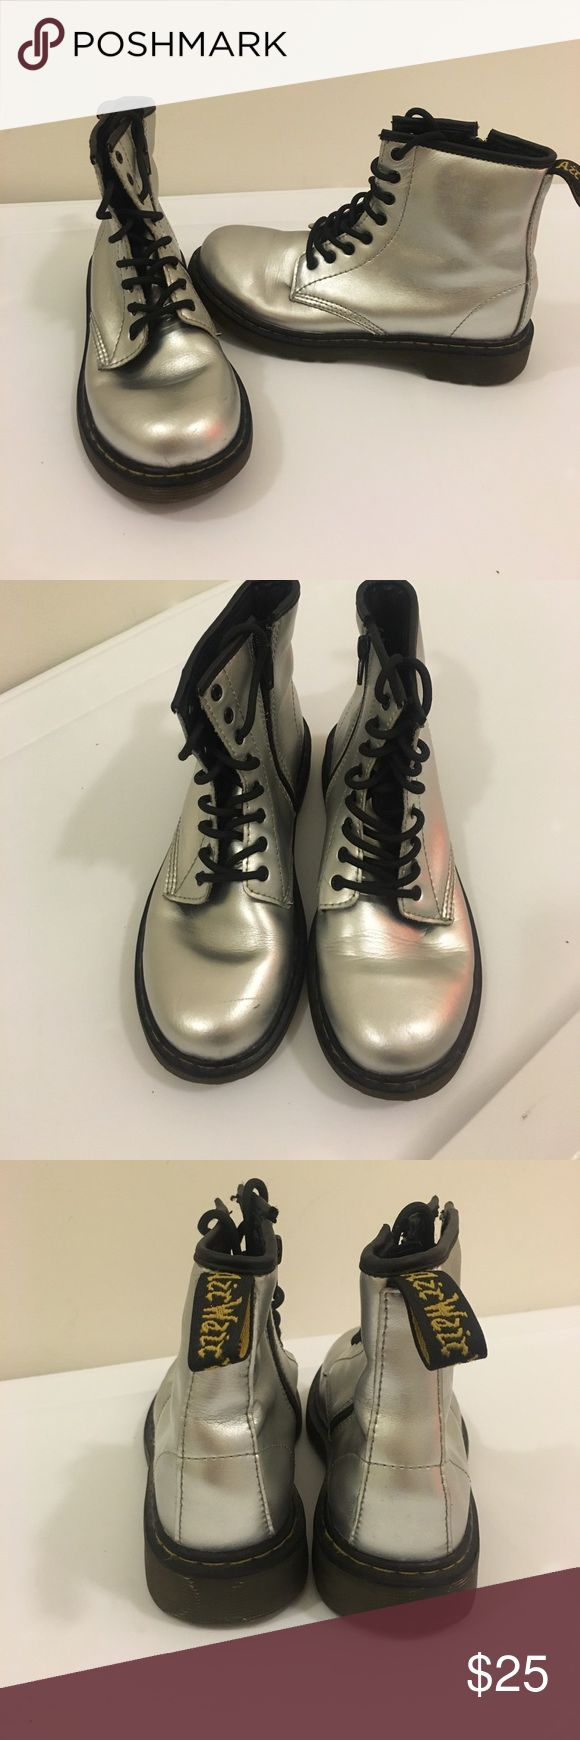 Silver kids dr martens  size 3 Dr martens size 3 silver zip up sides. Couple marks on toes please see pics before purchase. Comes from pet and smoke free home Open tornado able offers!!!!! Shoes Boots